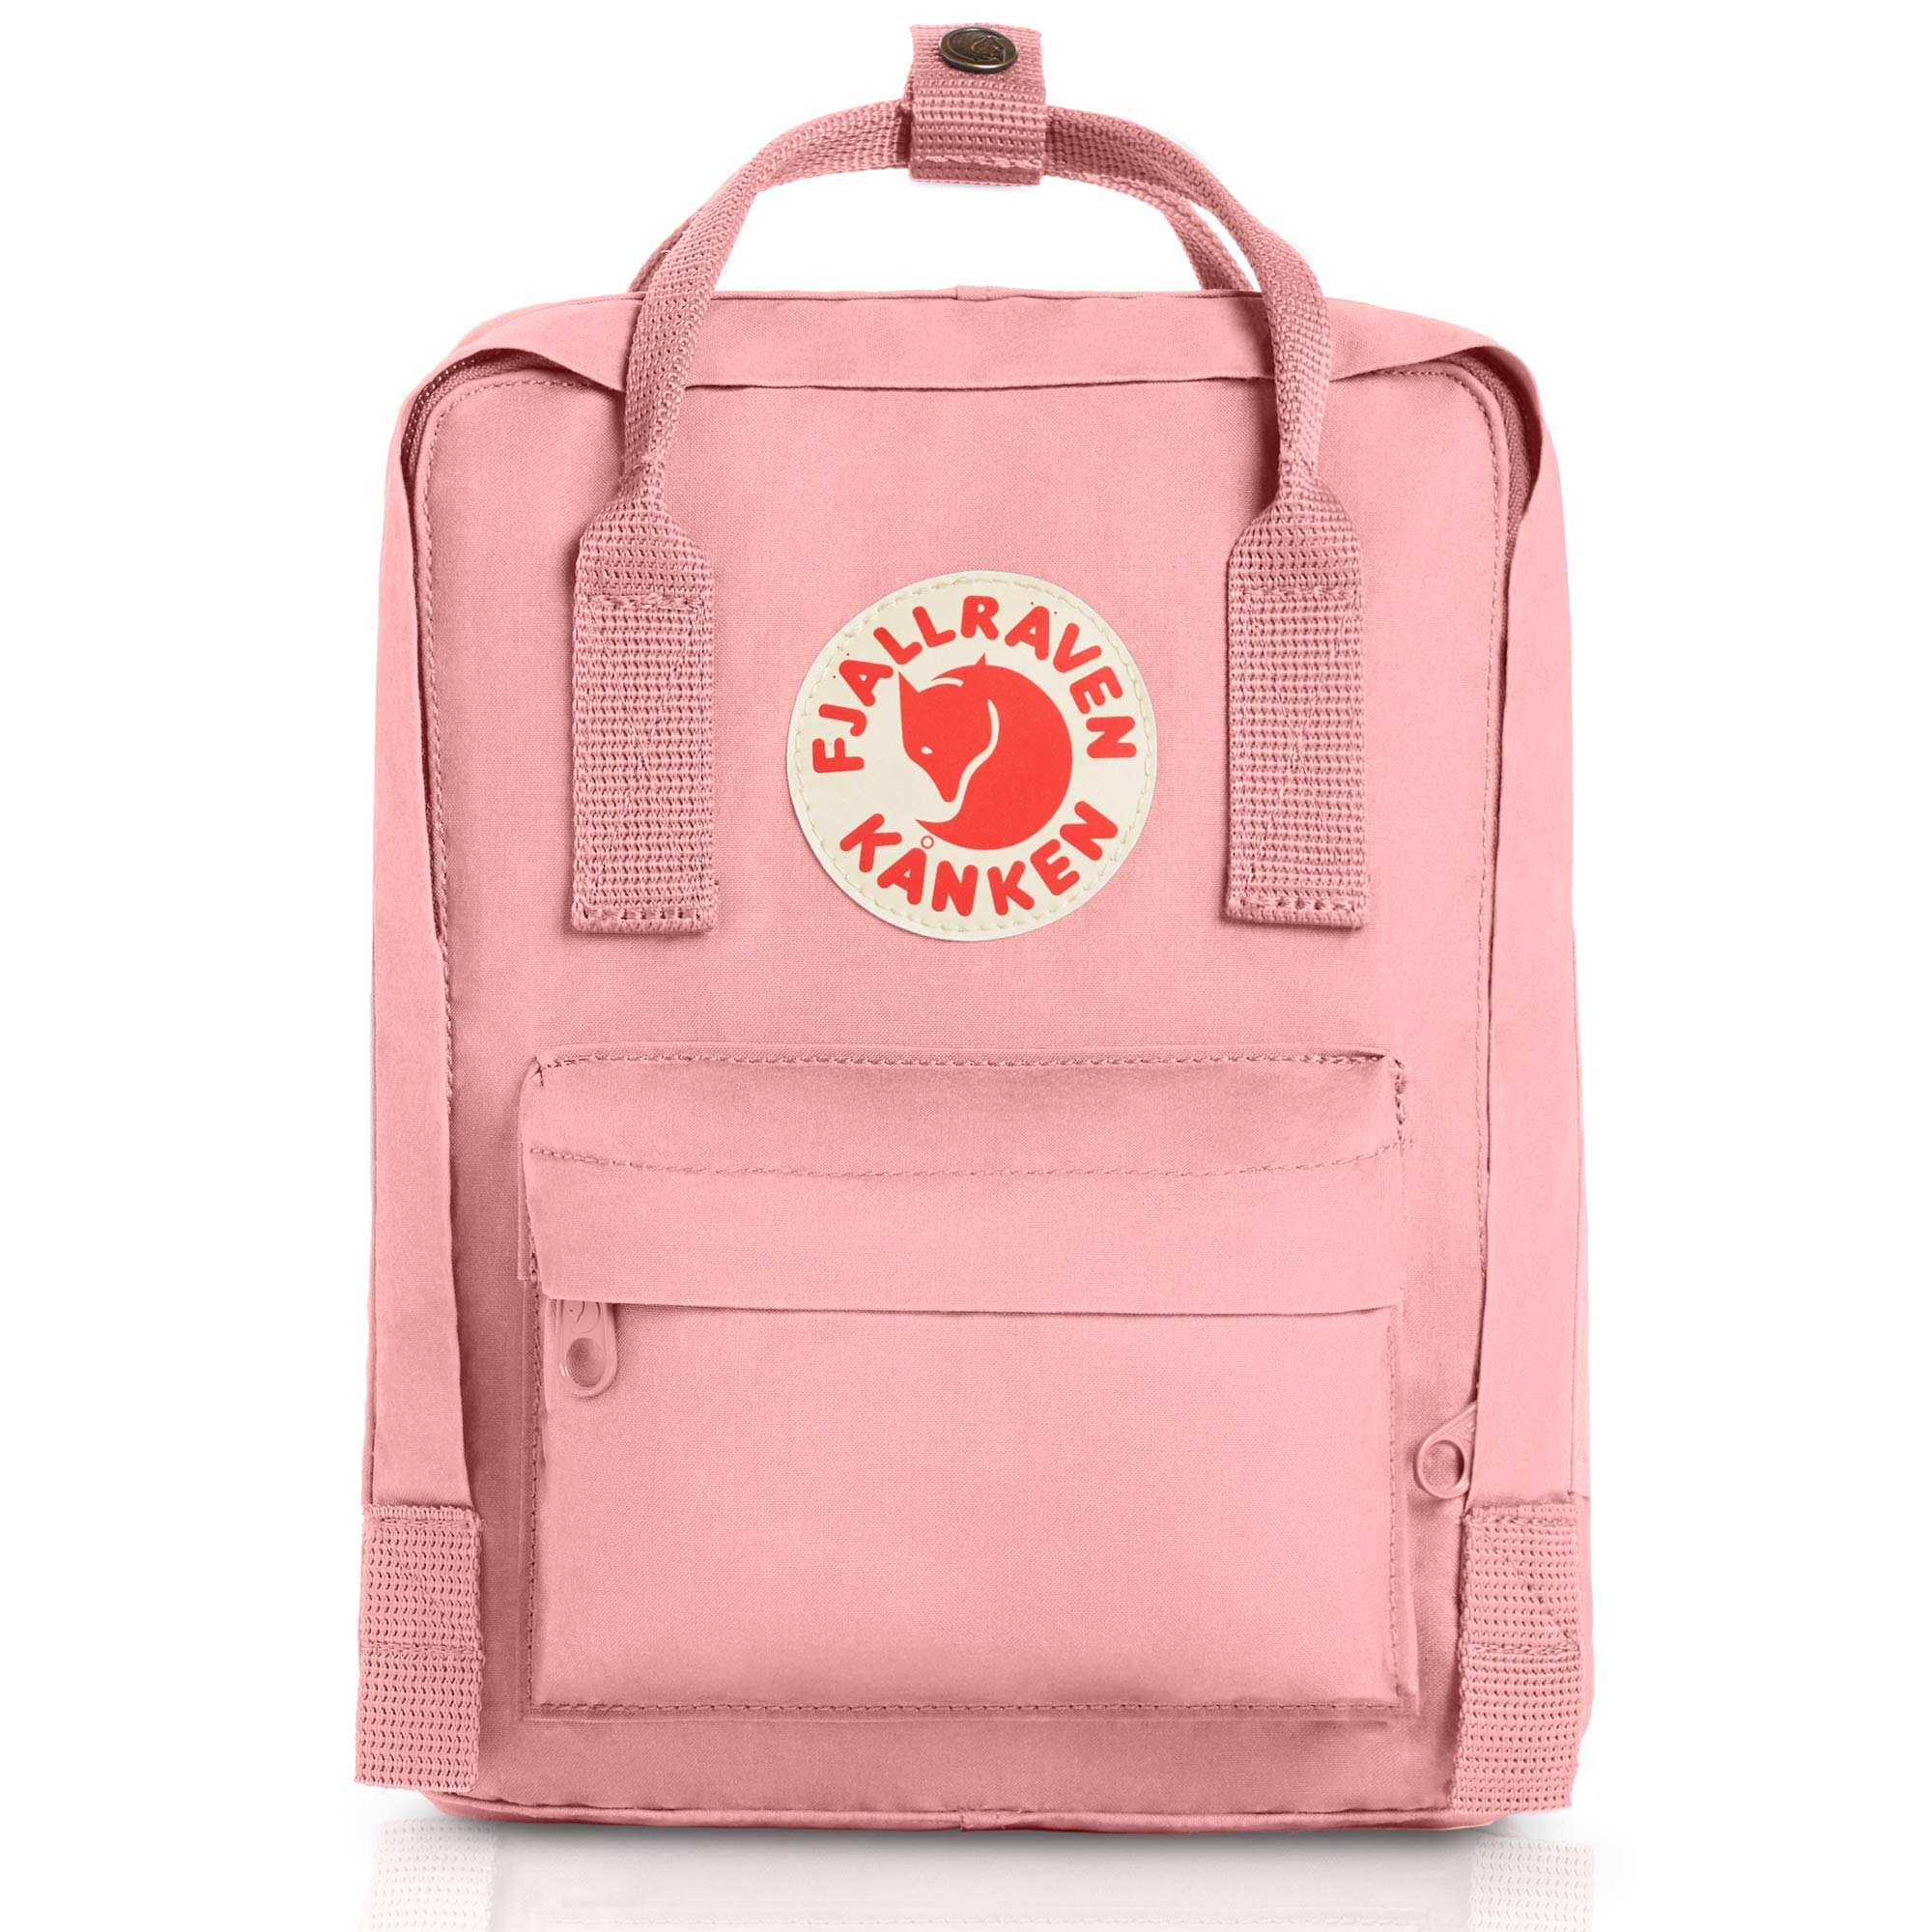 Fjallraven - Kanken Mini Classic Backpack for Everyday, Pink by Fjallraven